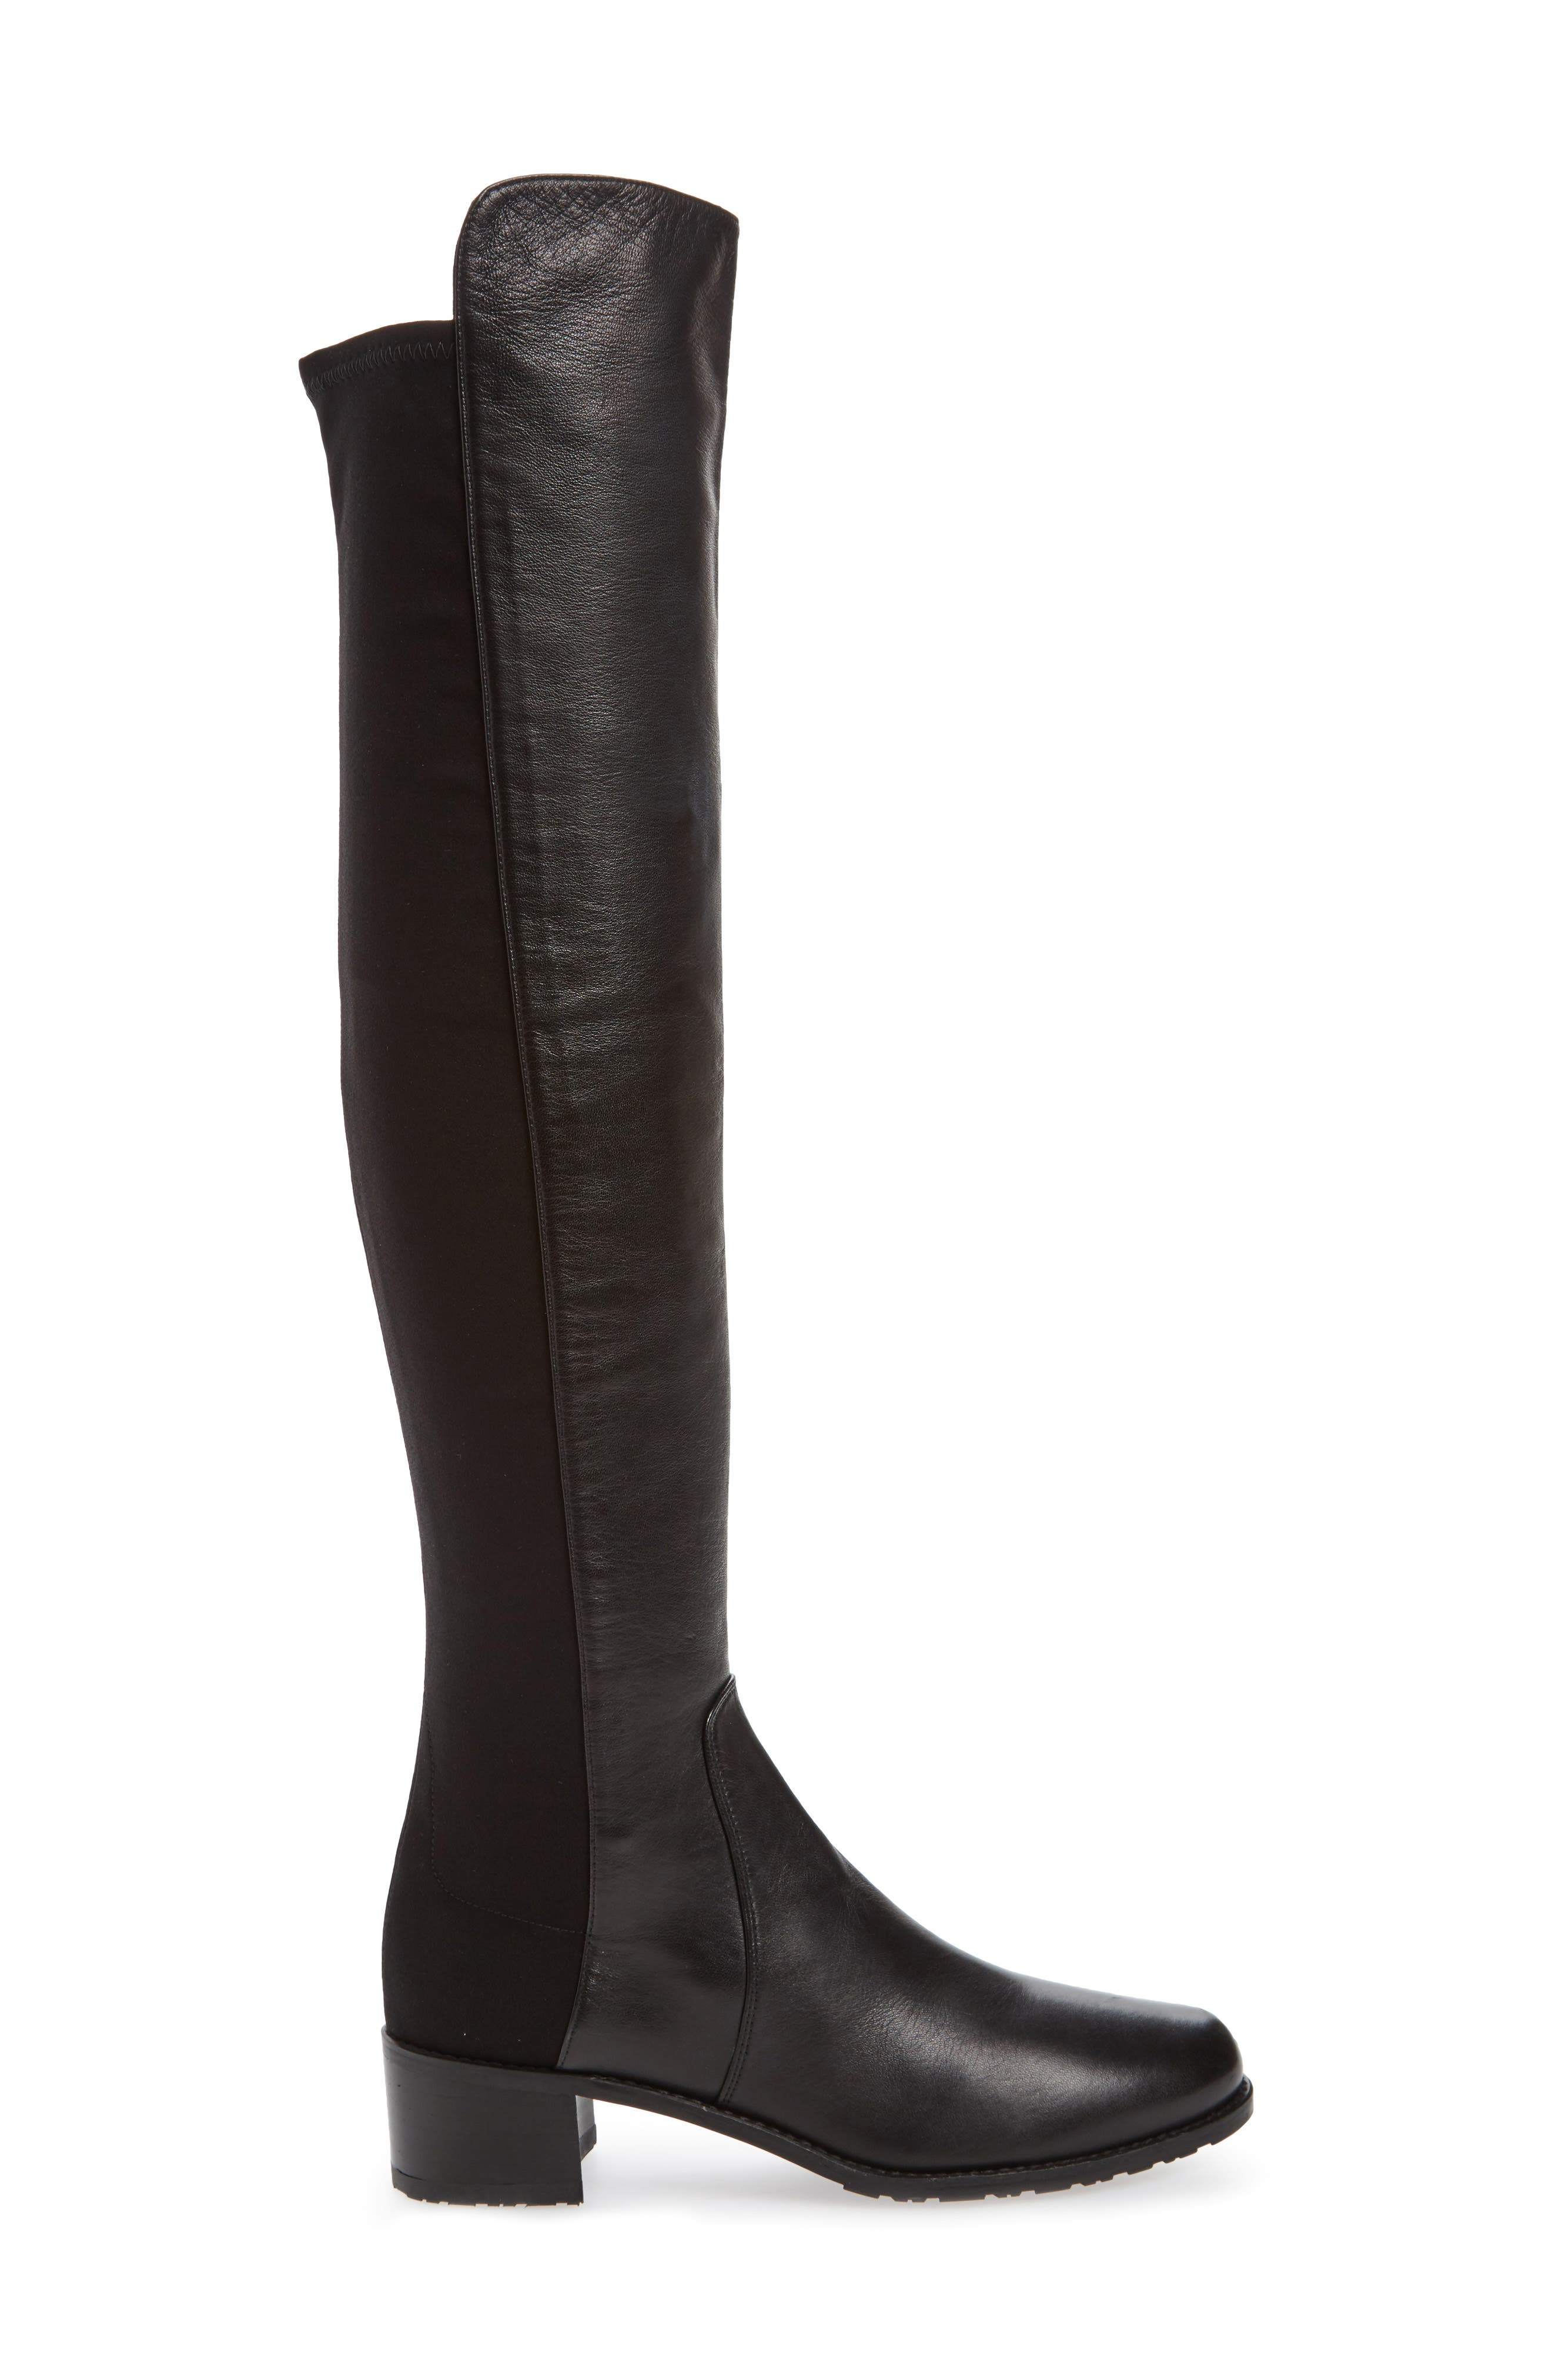 'Reserve' Over the Knee Boot,                             Alternate thumbnail 3, color,                             Black Nappa